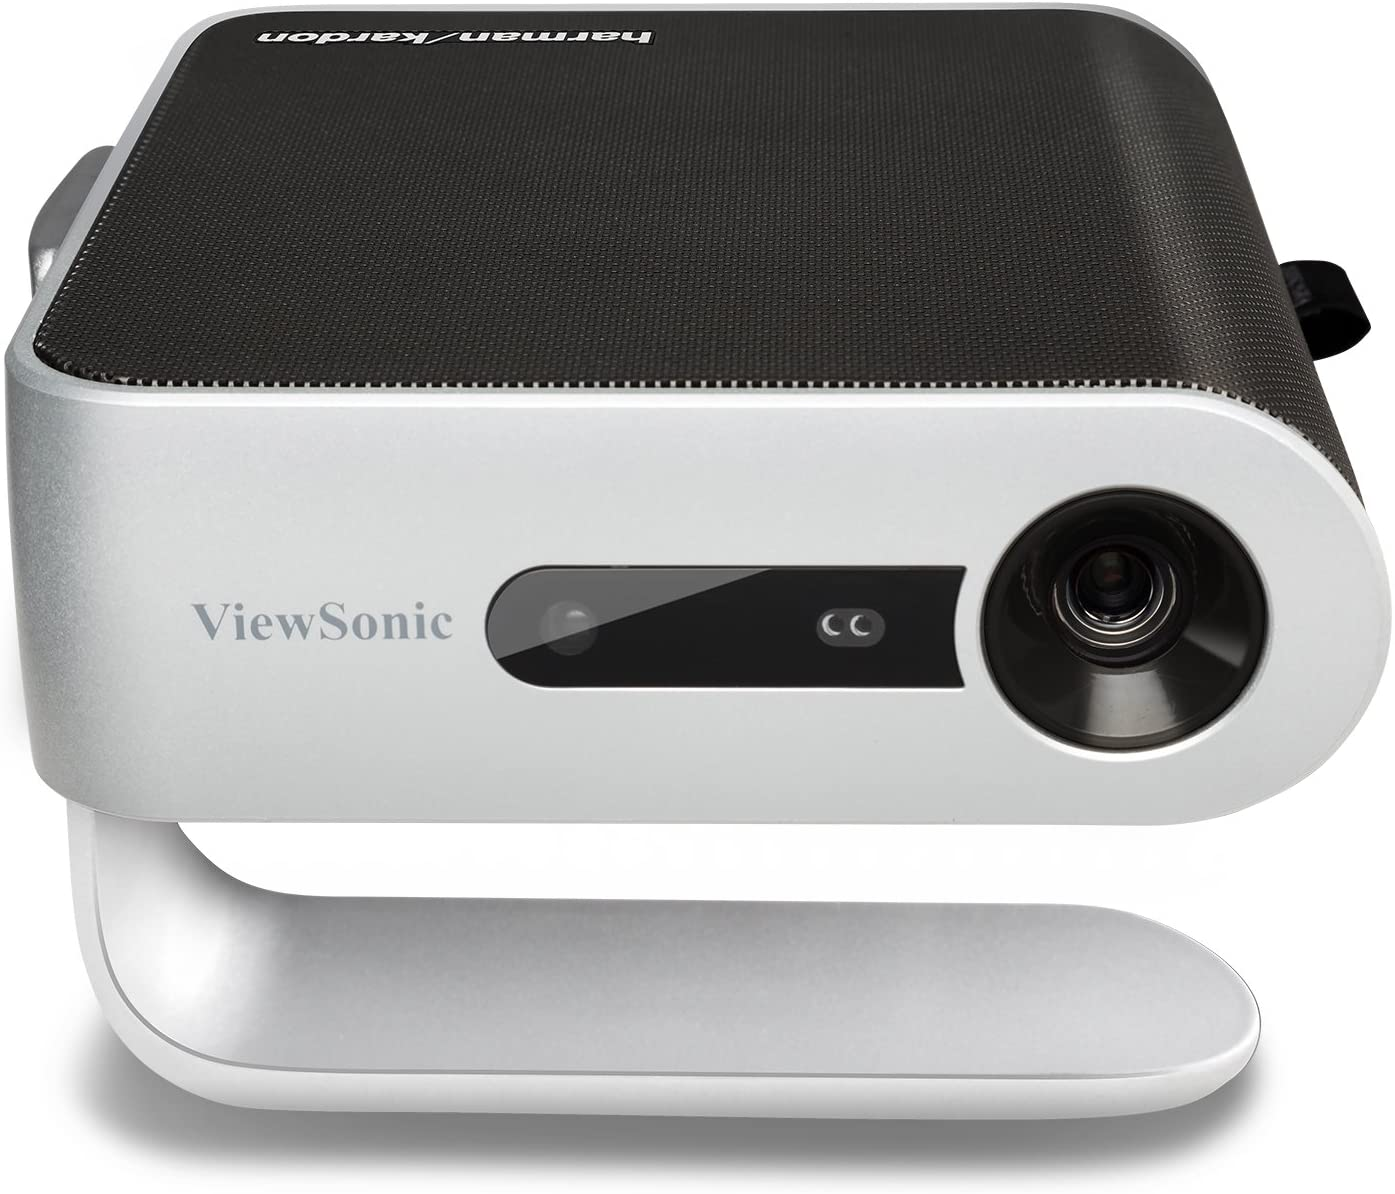 ViewSonic M1 Portable LED Projector for Home & Family Entertainment with Harman Kardon Audio uk reviews